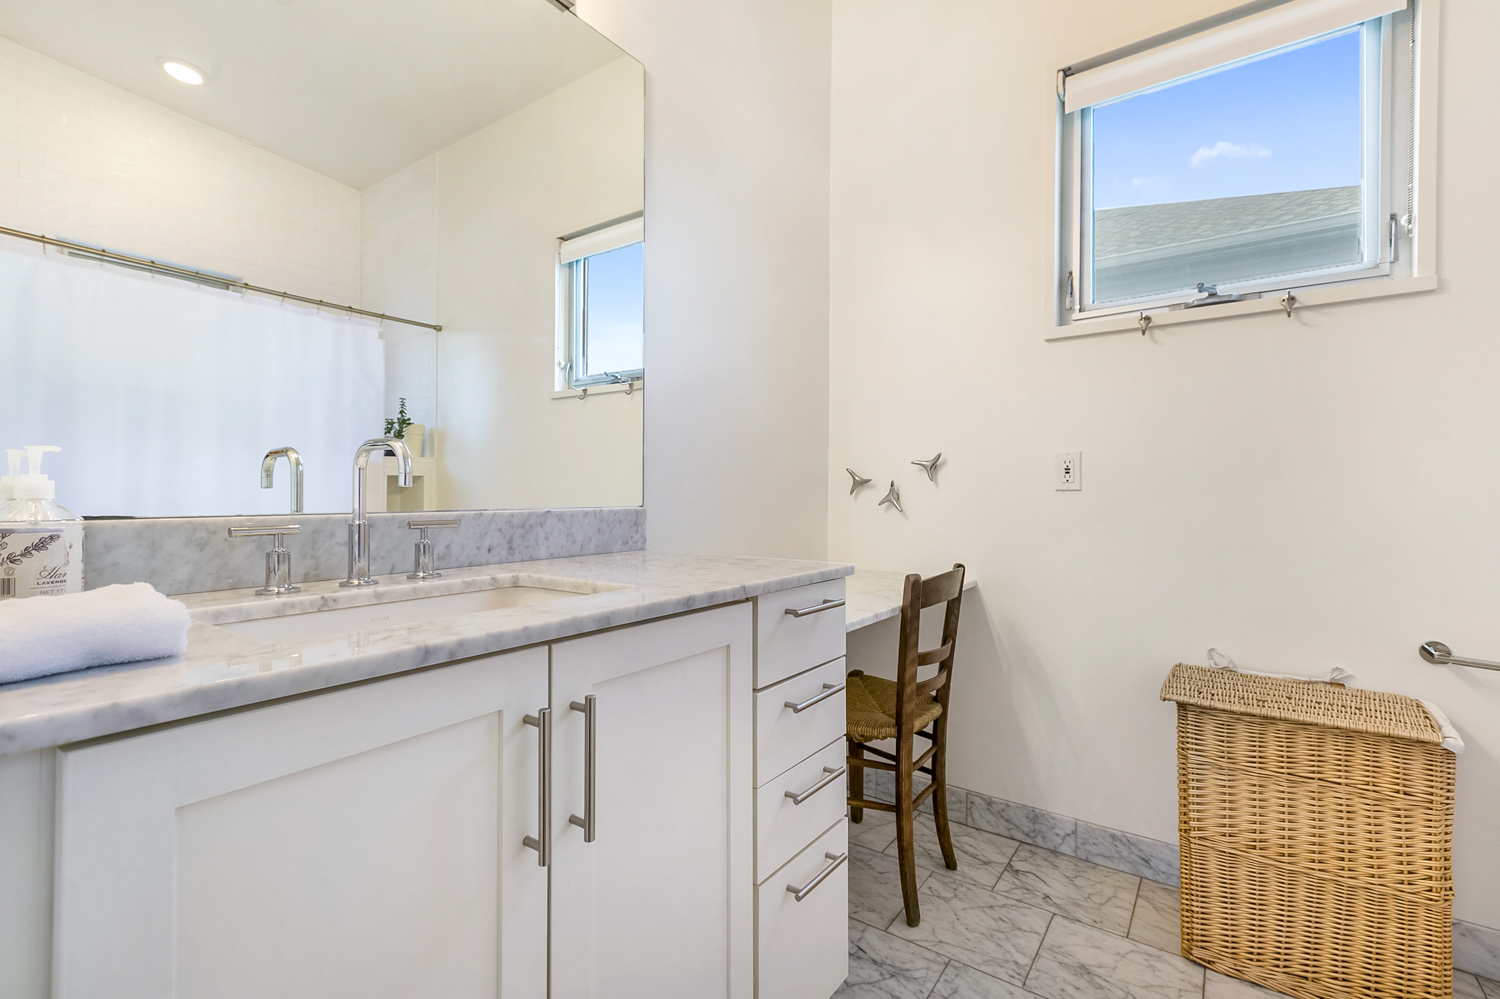 Uptown, Condo, 2 beds, 3.0 baths, $5000 per month New Orleans Rental - devie image_13